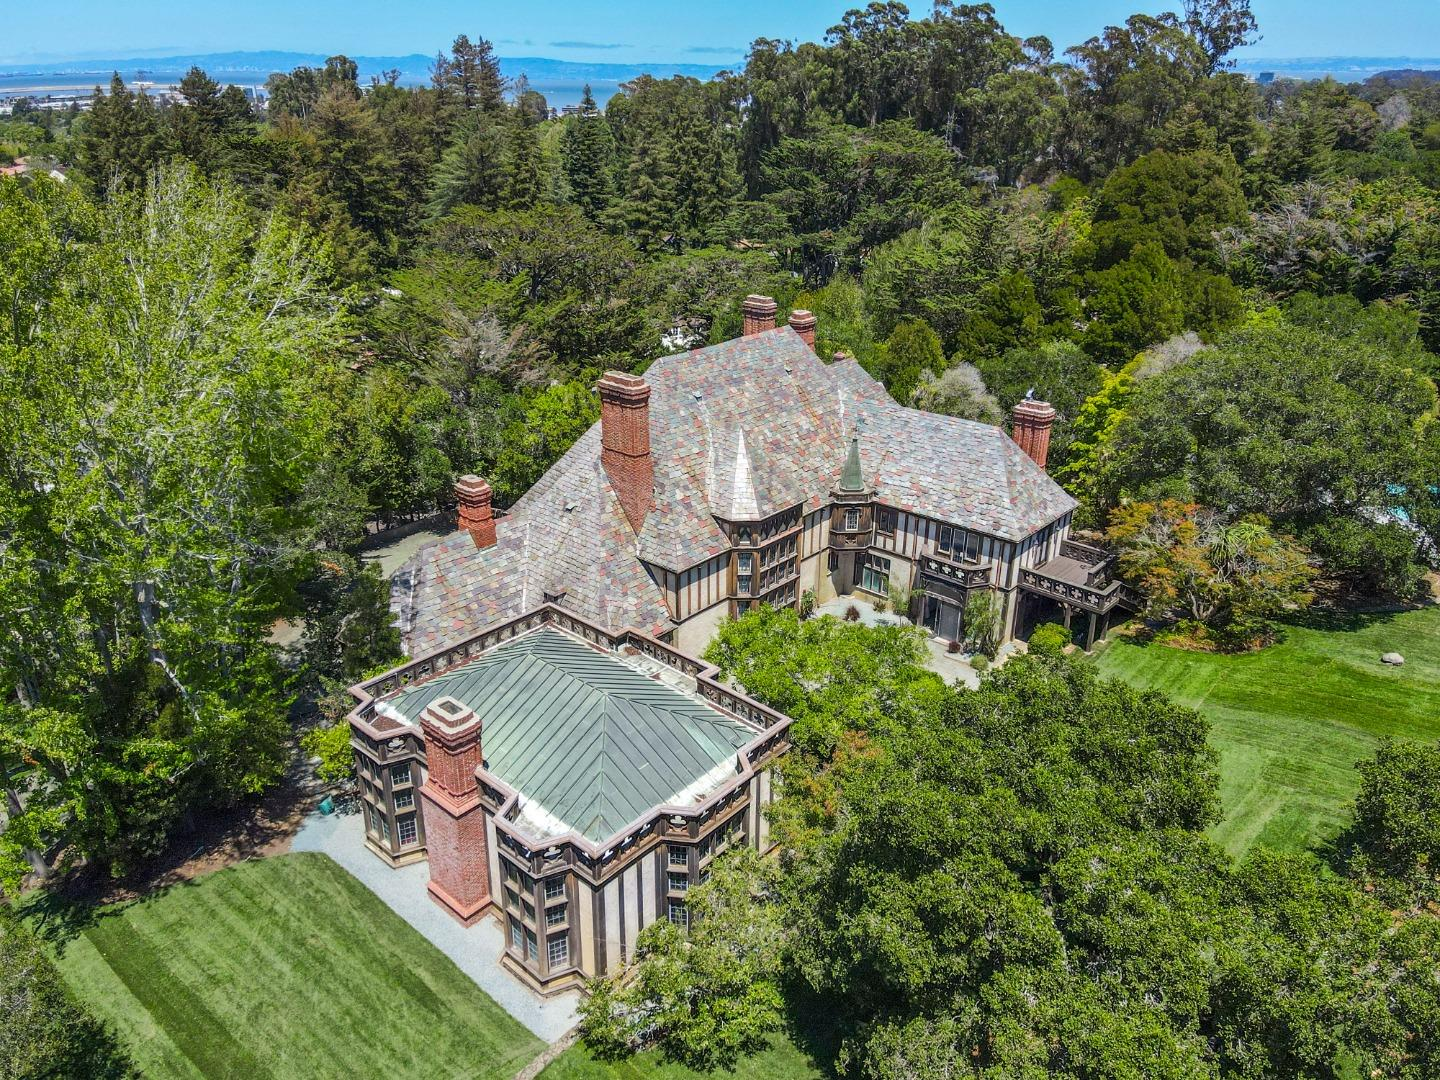 """The original """"Fagan Estate,"""" namesake of the Fagan Estates subdivision is on the market again for the first time since the mid-1970s. 10 bedrooms, 6.5 bathrooms, 13,490 square feet on just over 2 acres of land. Beautiful English Tudor architectural style, and filled with rare antique pieces, like reclaimed wood from a famous shipwreck, a coffee table fashioned from a door said to belong to Leonardo Da Vinci, and a 16th century marble fireplace. Once in a lifetime opportunity to own a famed Hillsborough estate.  *0.9 Acre parcel adjacent to the property is also listed for sale. Properties are NOT required to be purchased together*"""